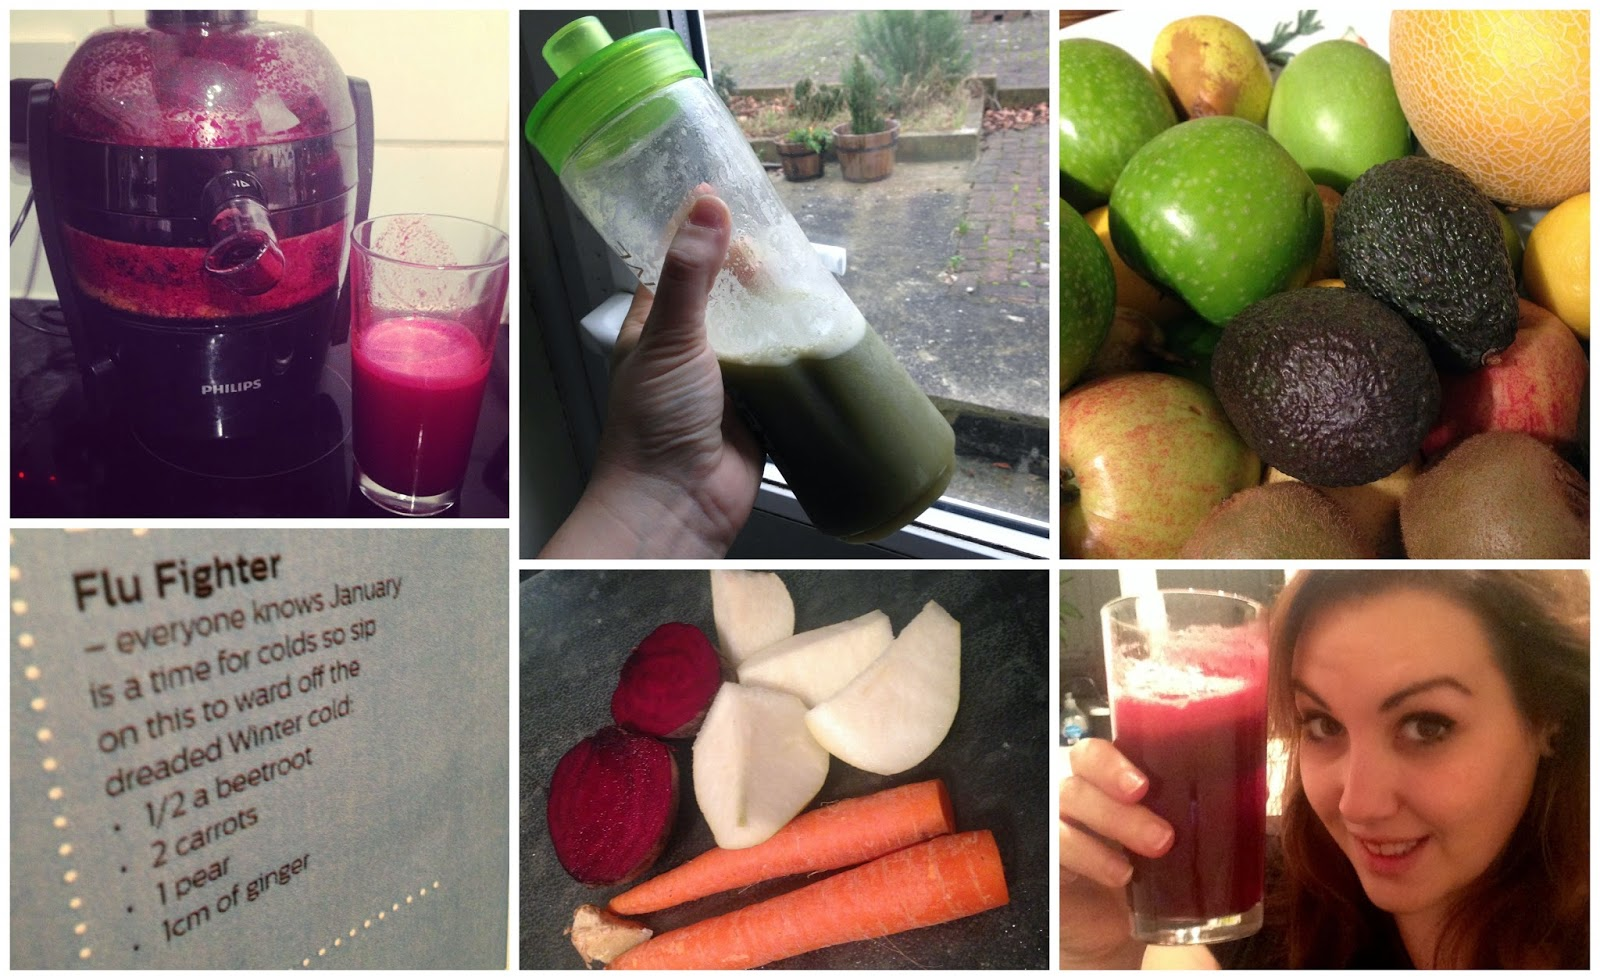 #REALJUICEREBOOT WEEK 2 WITH @THEBODYCOACH